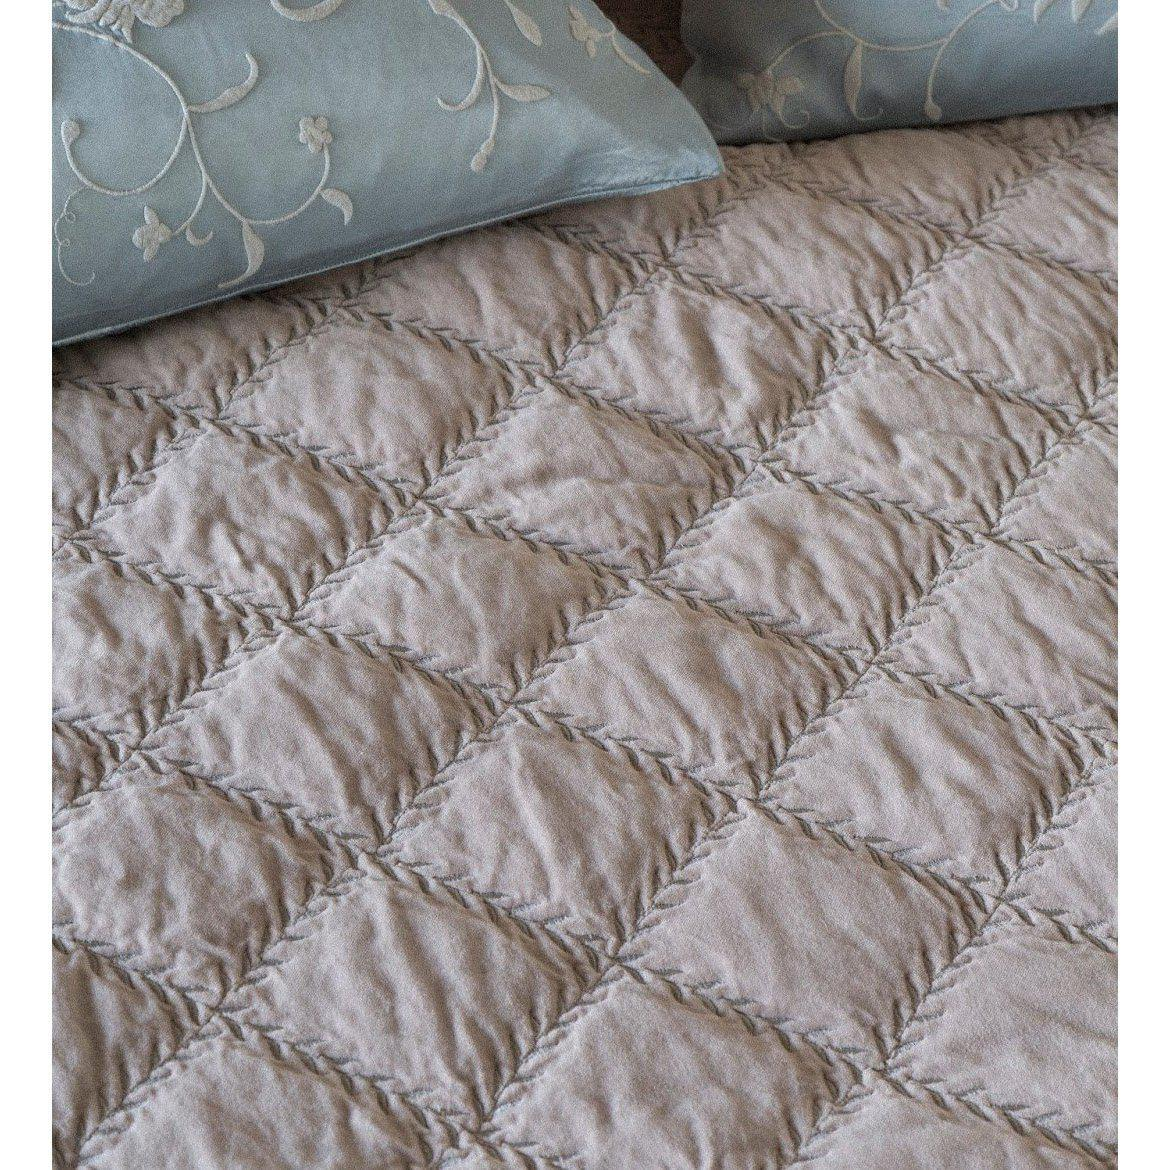 Bella Notte Linens Marseille Coverlet-Bed & Bath-A Cottage in the City